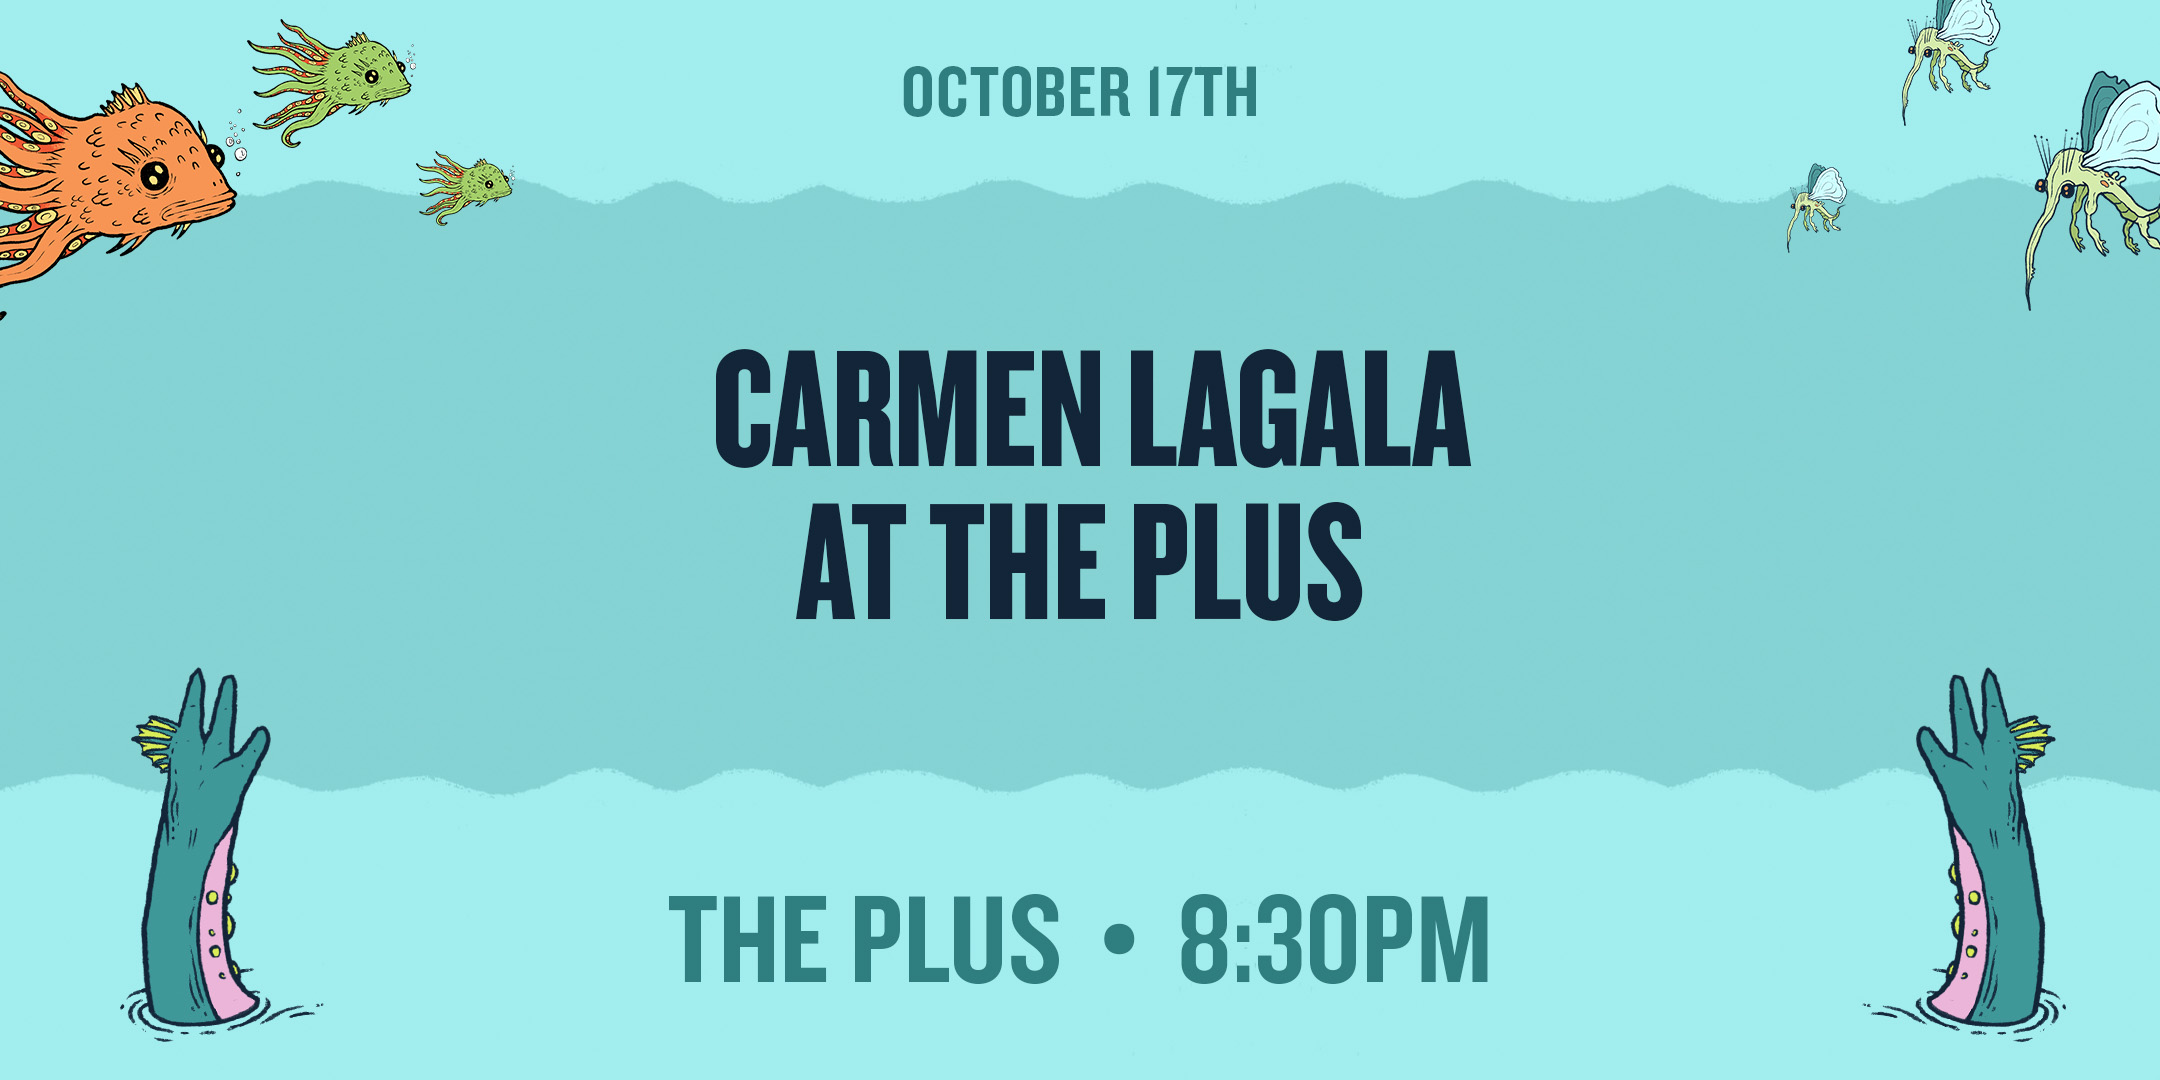 oct17-carmen_lagala_at_the_plus.jpg